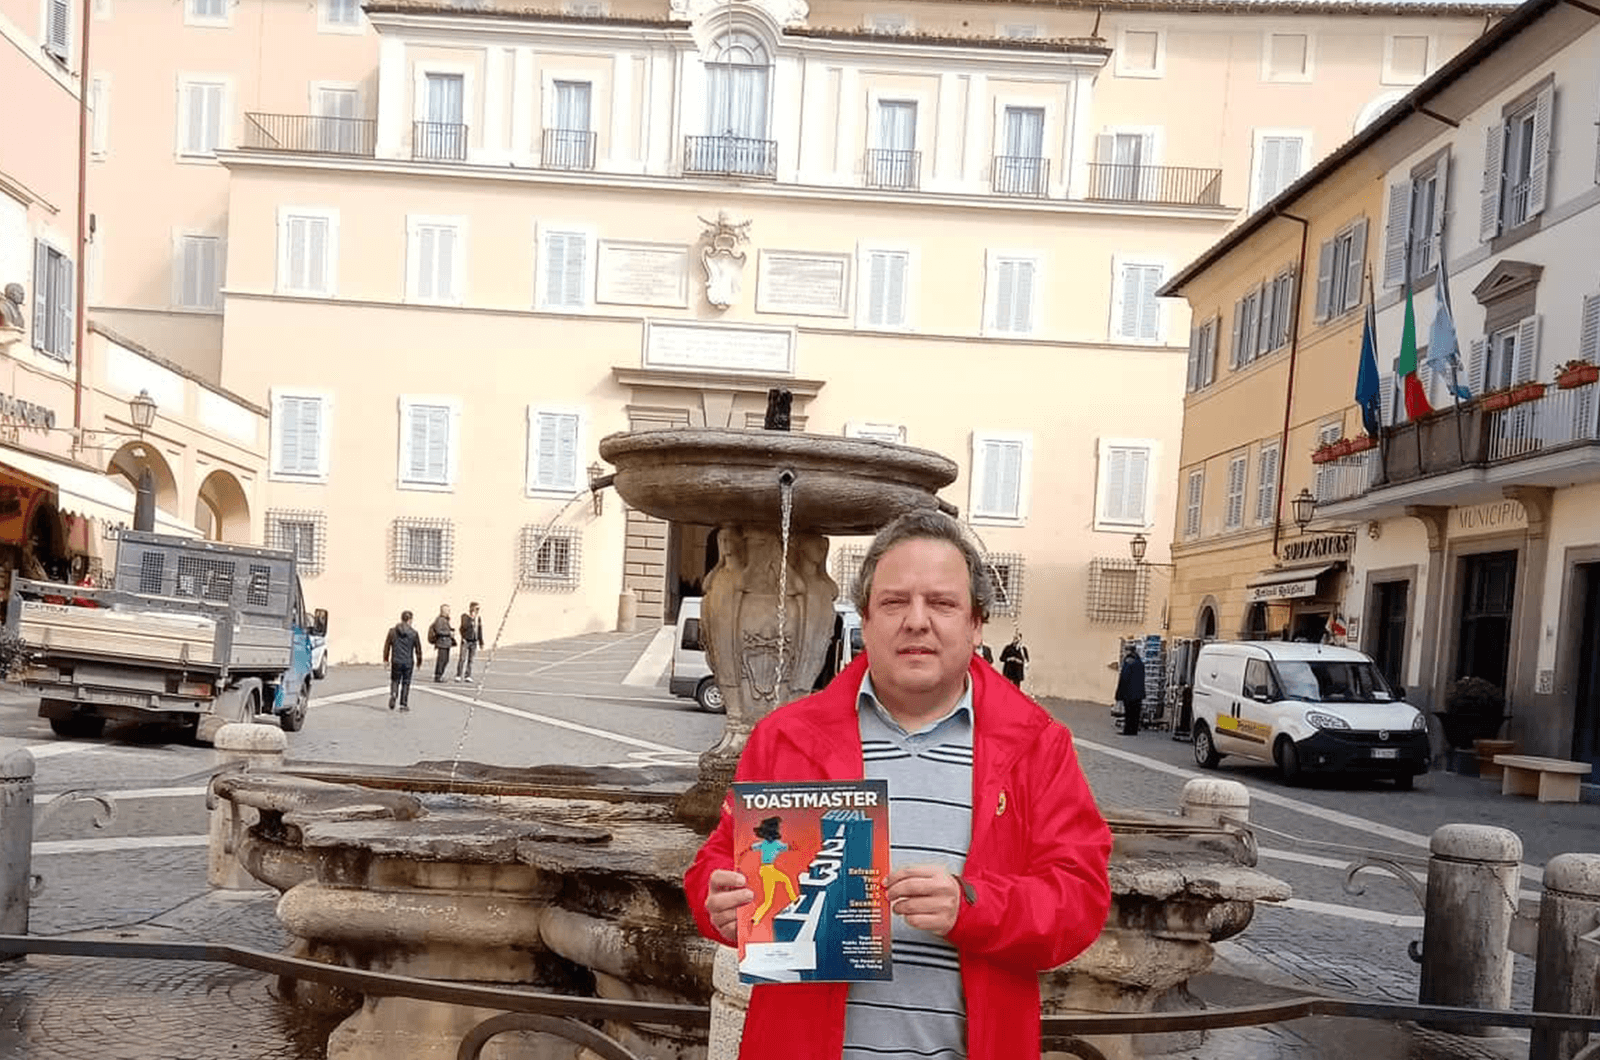 Ricardo Gama of Riachos, Portugal, pauses for a photo with the Apostolic Palace of Castel Gandolfo, Italy—the vacation retreat for the Catholic pope.